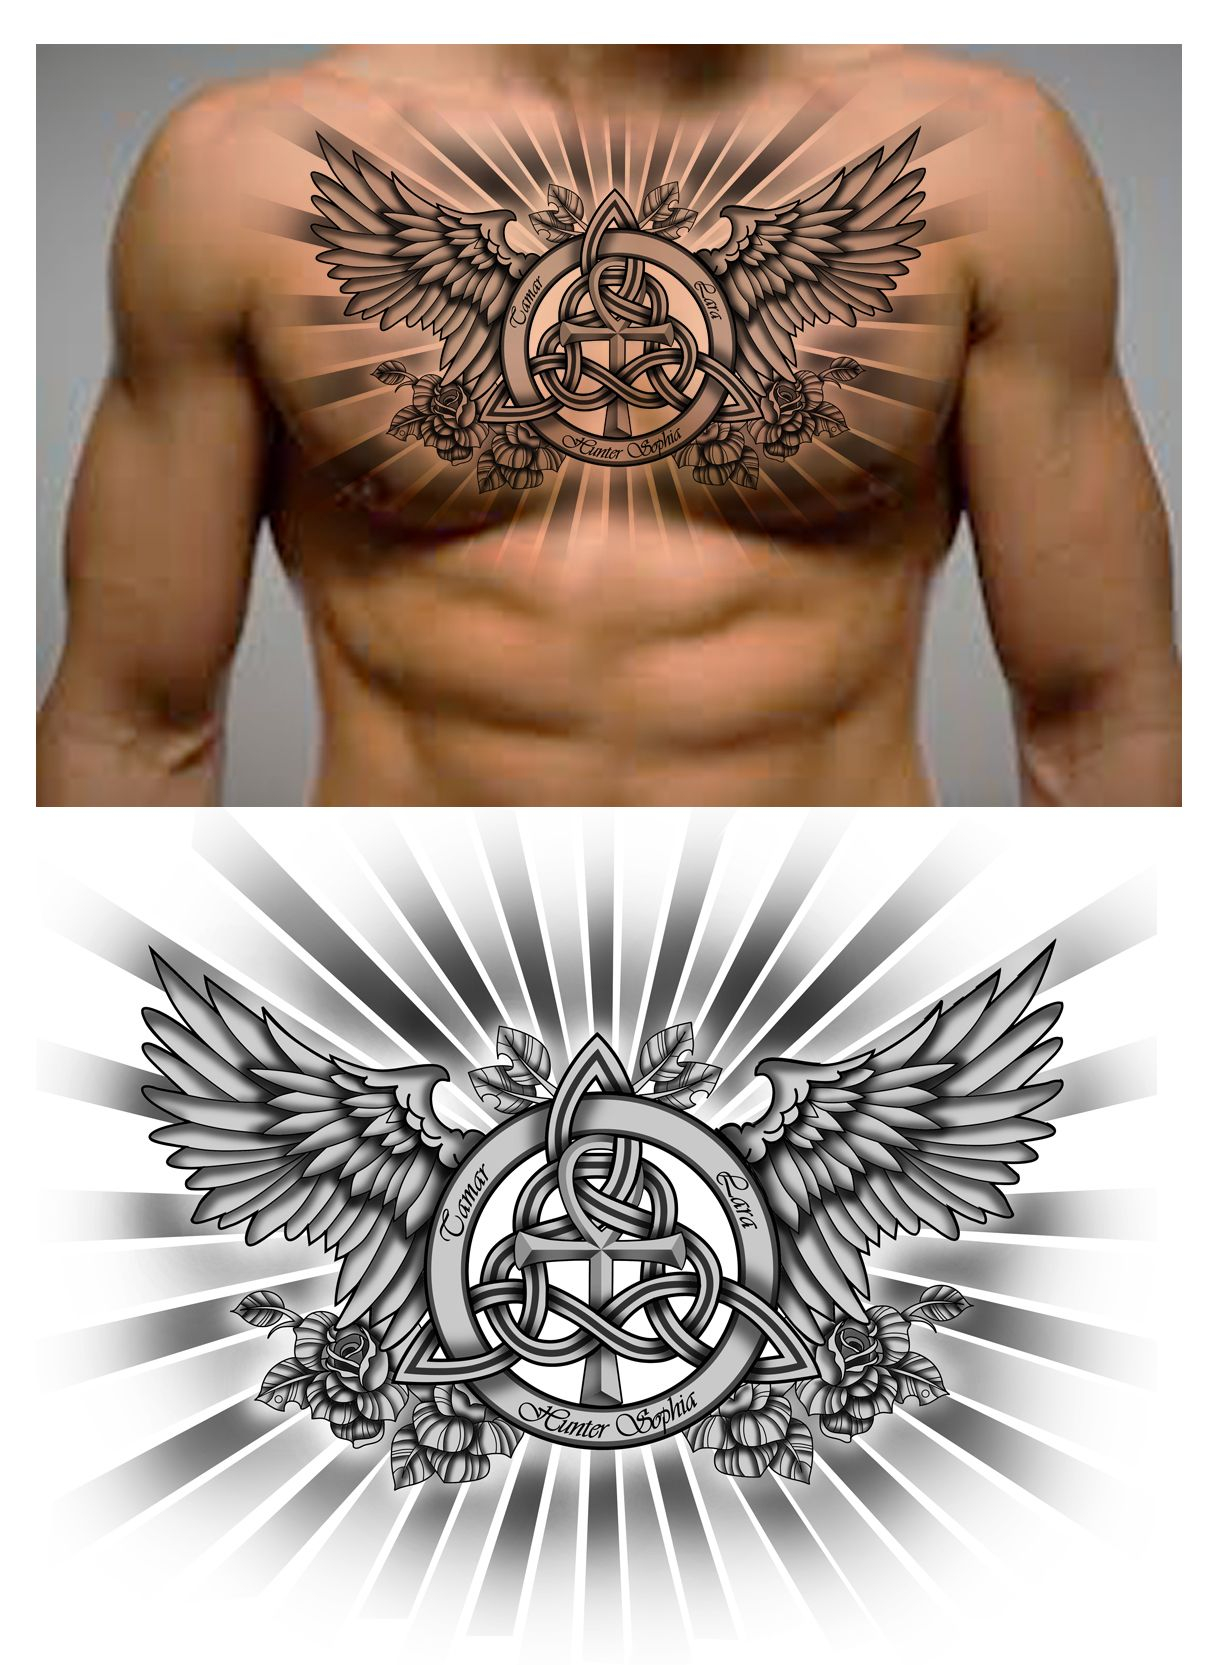 Family Trinity Knot With Names And Ankh Symbol In It Chest Piece with regard to proportions 1222 X 1665